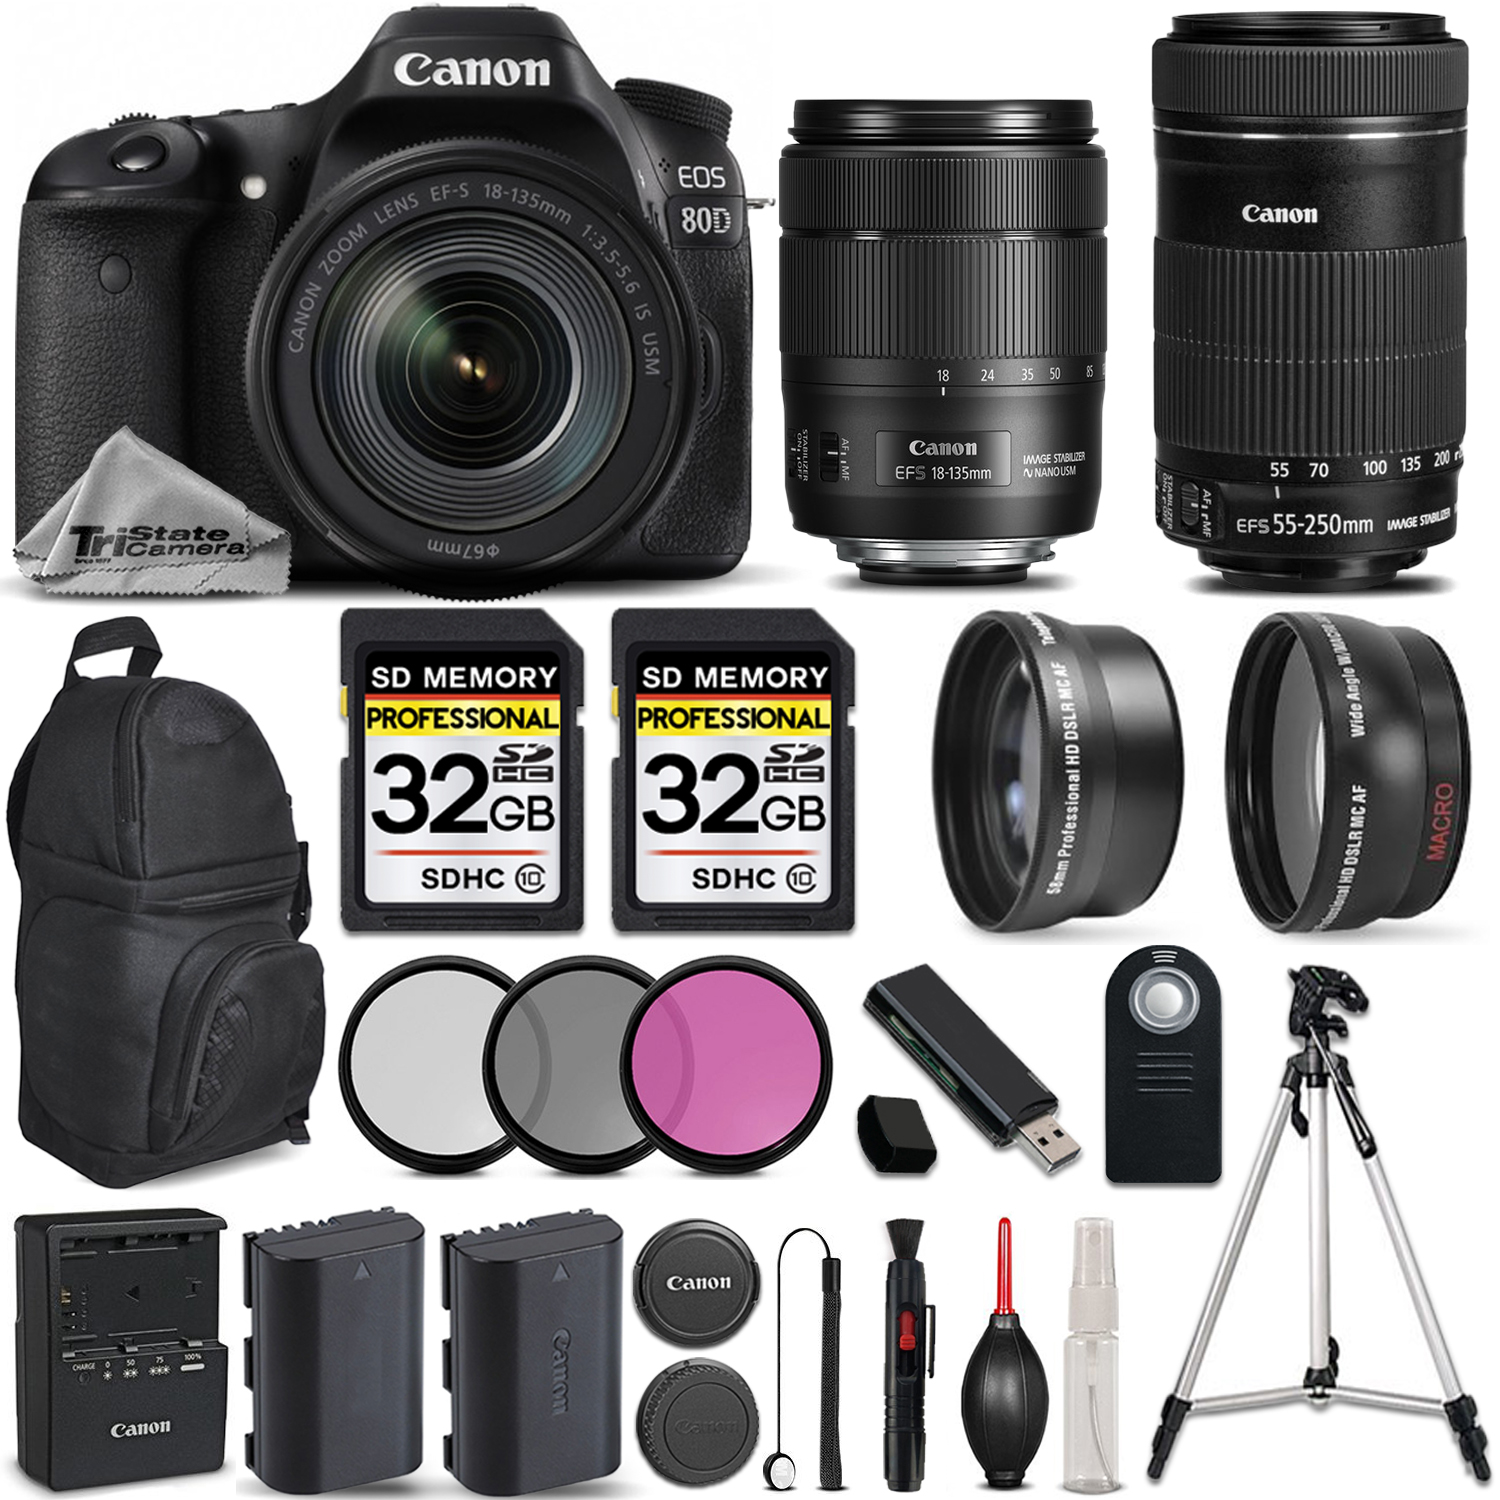 EOS 80D DSLR Camera + 18-135mm IS USM Lens + Canon 55-250 IS STM - PRO KIT *FREE SHIPPING*